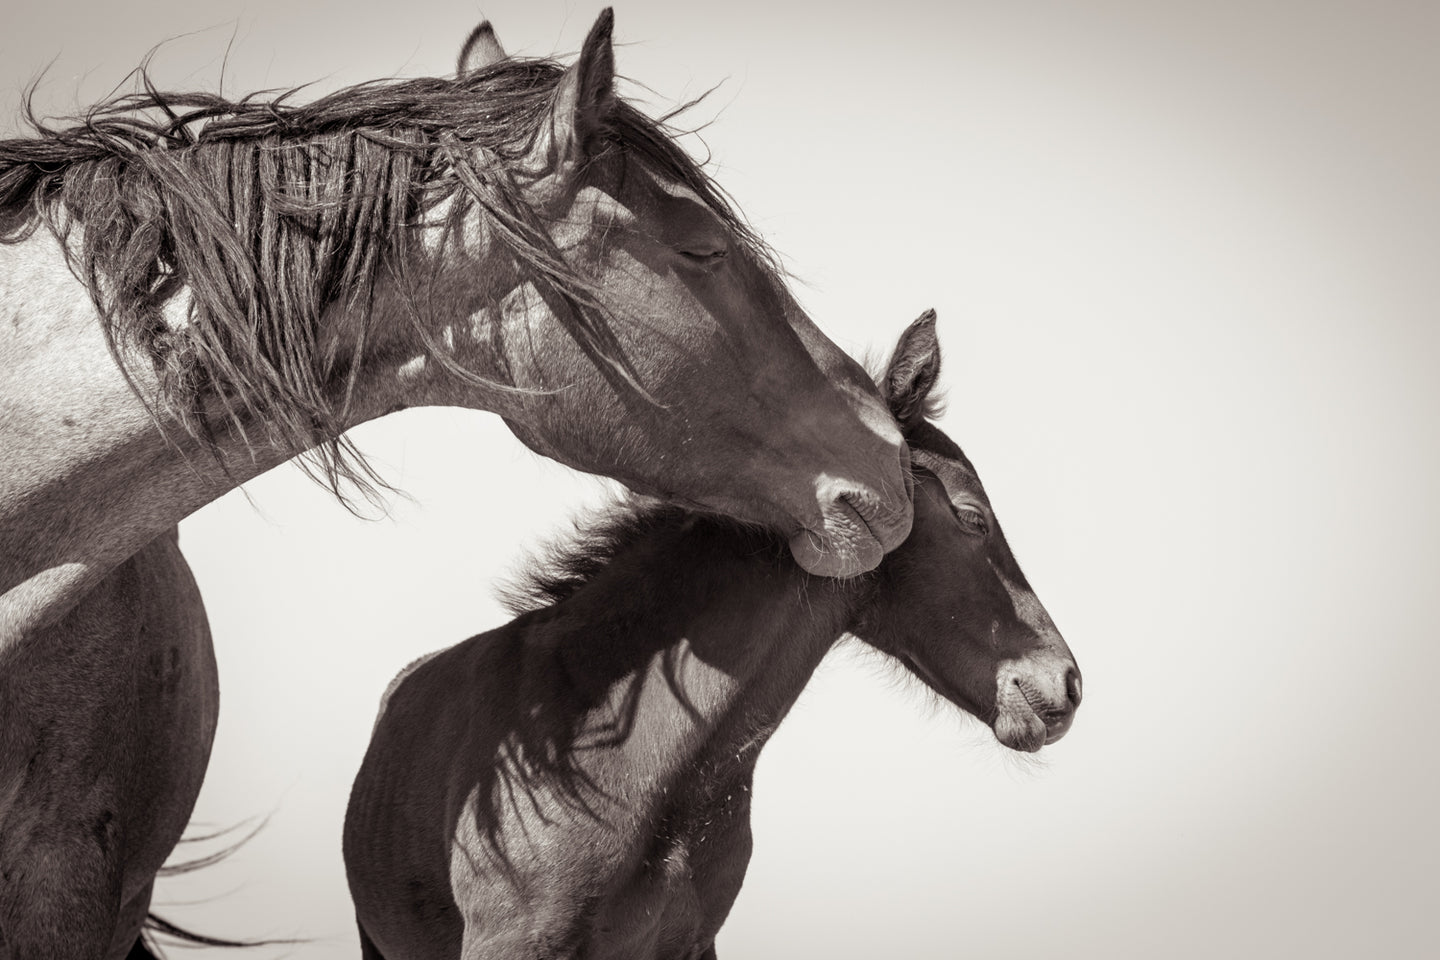 A Mother's Love, Utah Mare & Foal, 2017